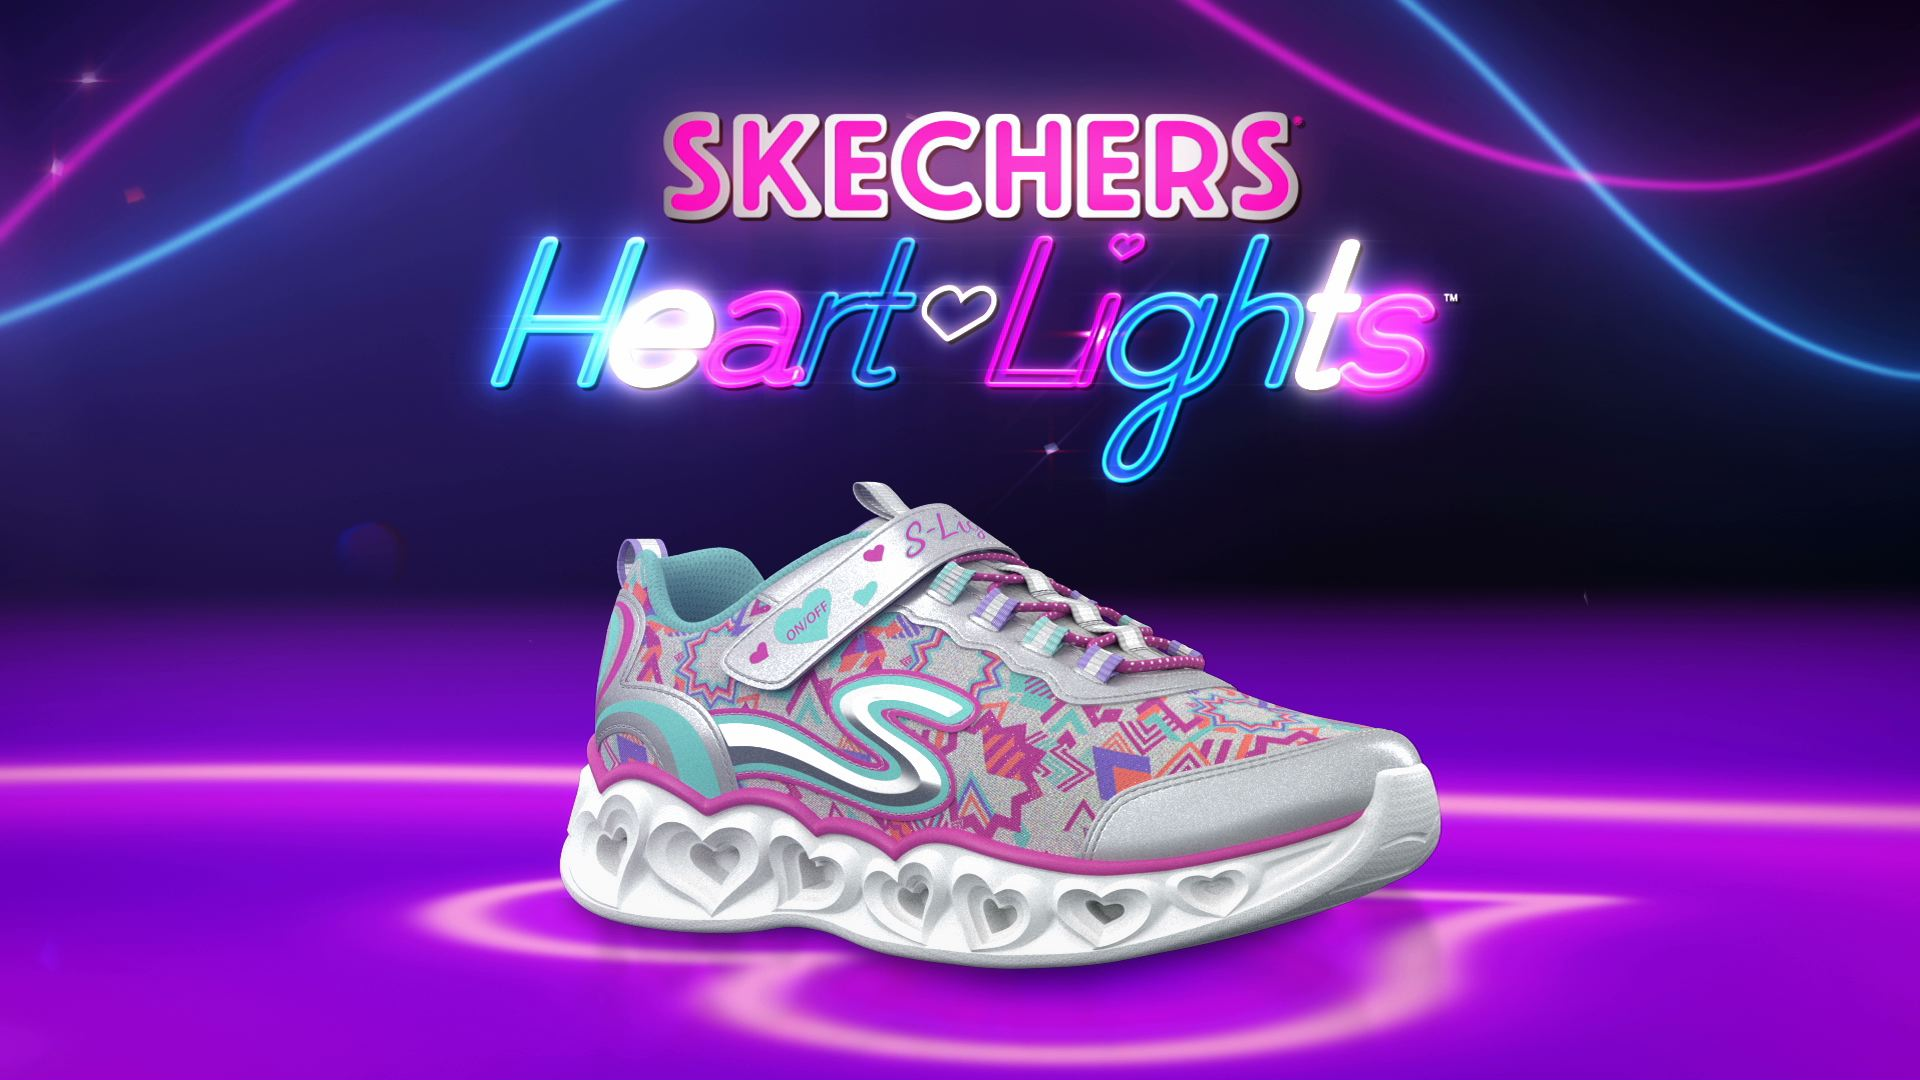 skechers motto